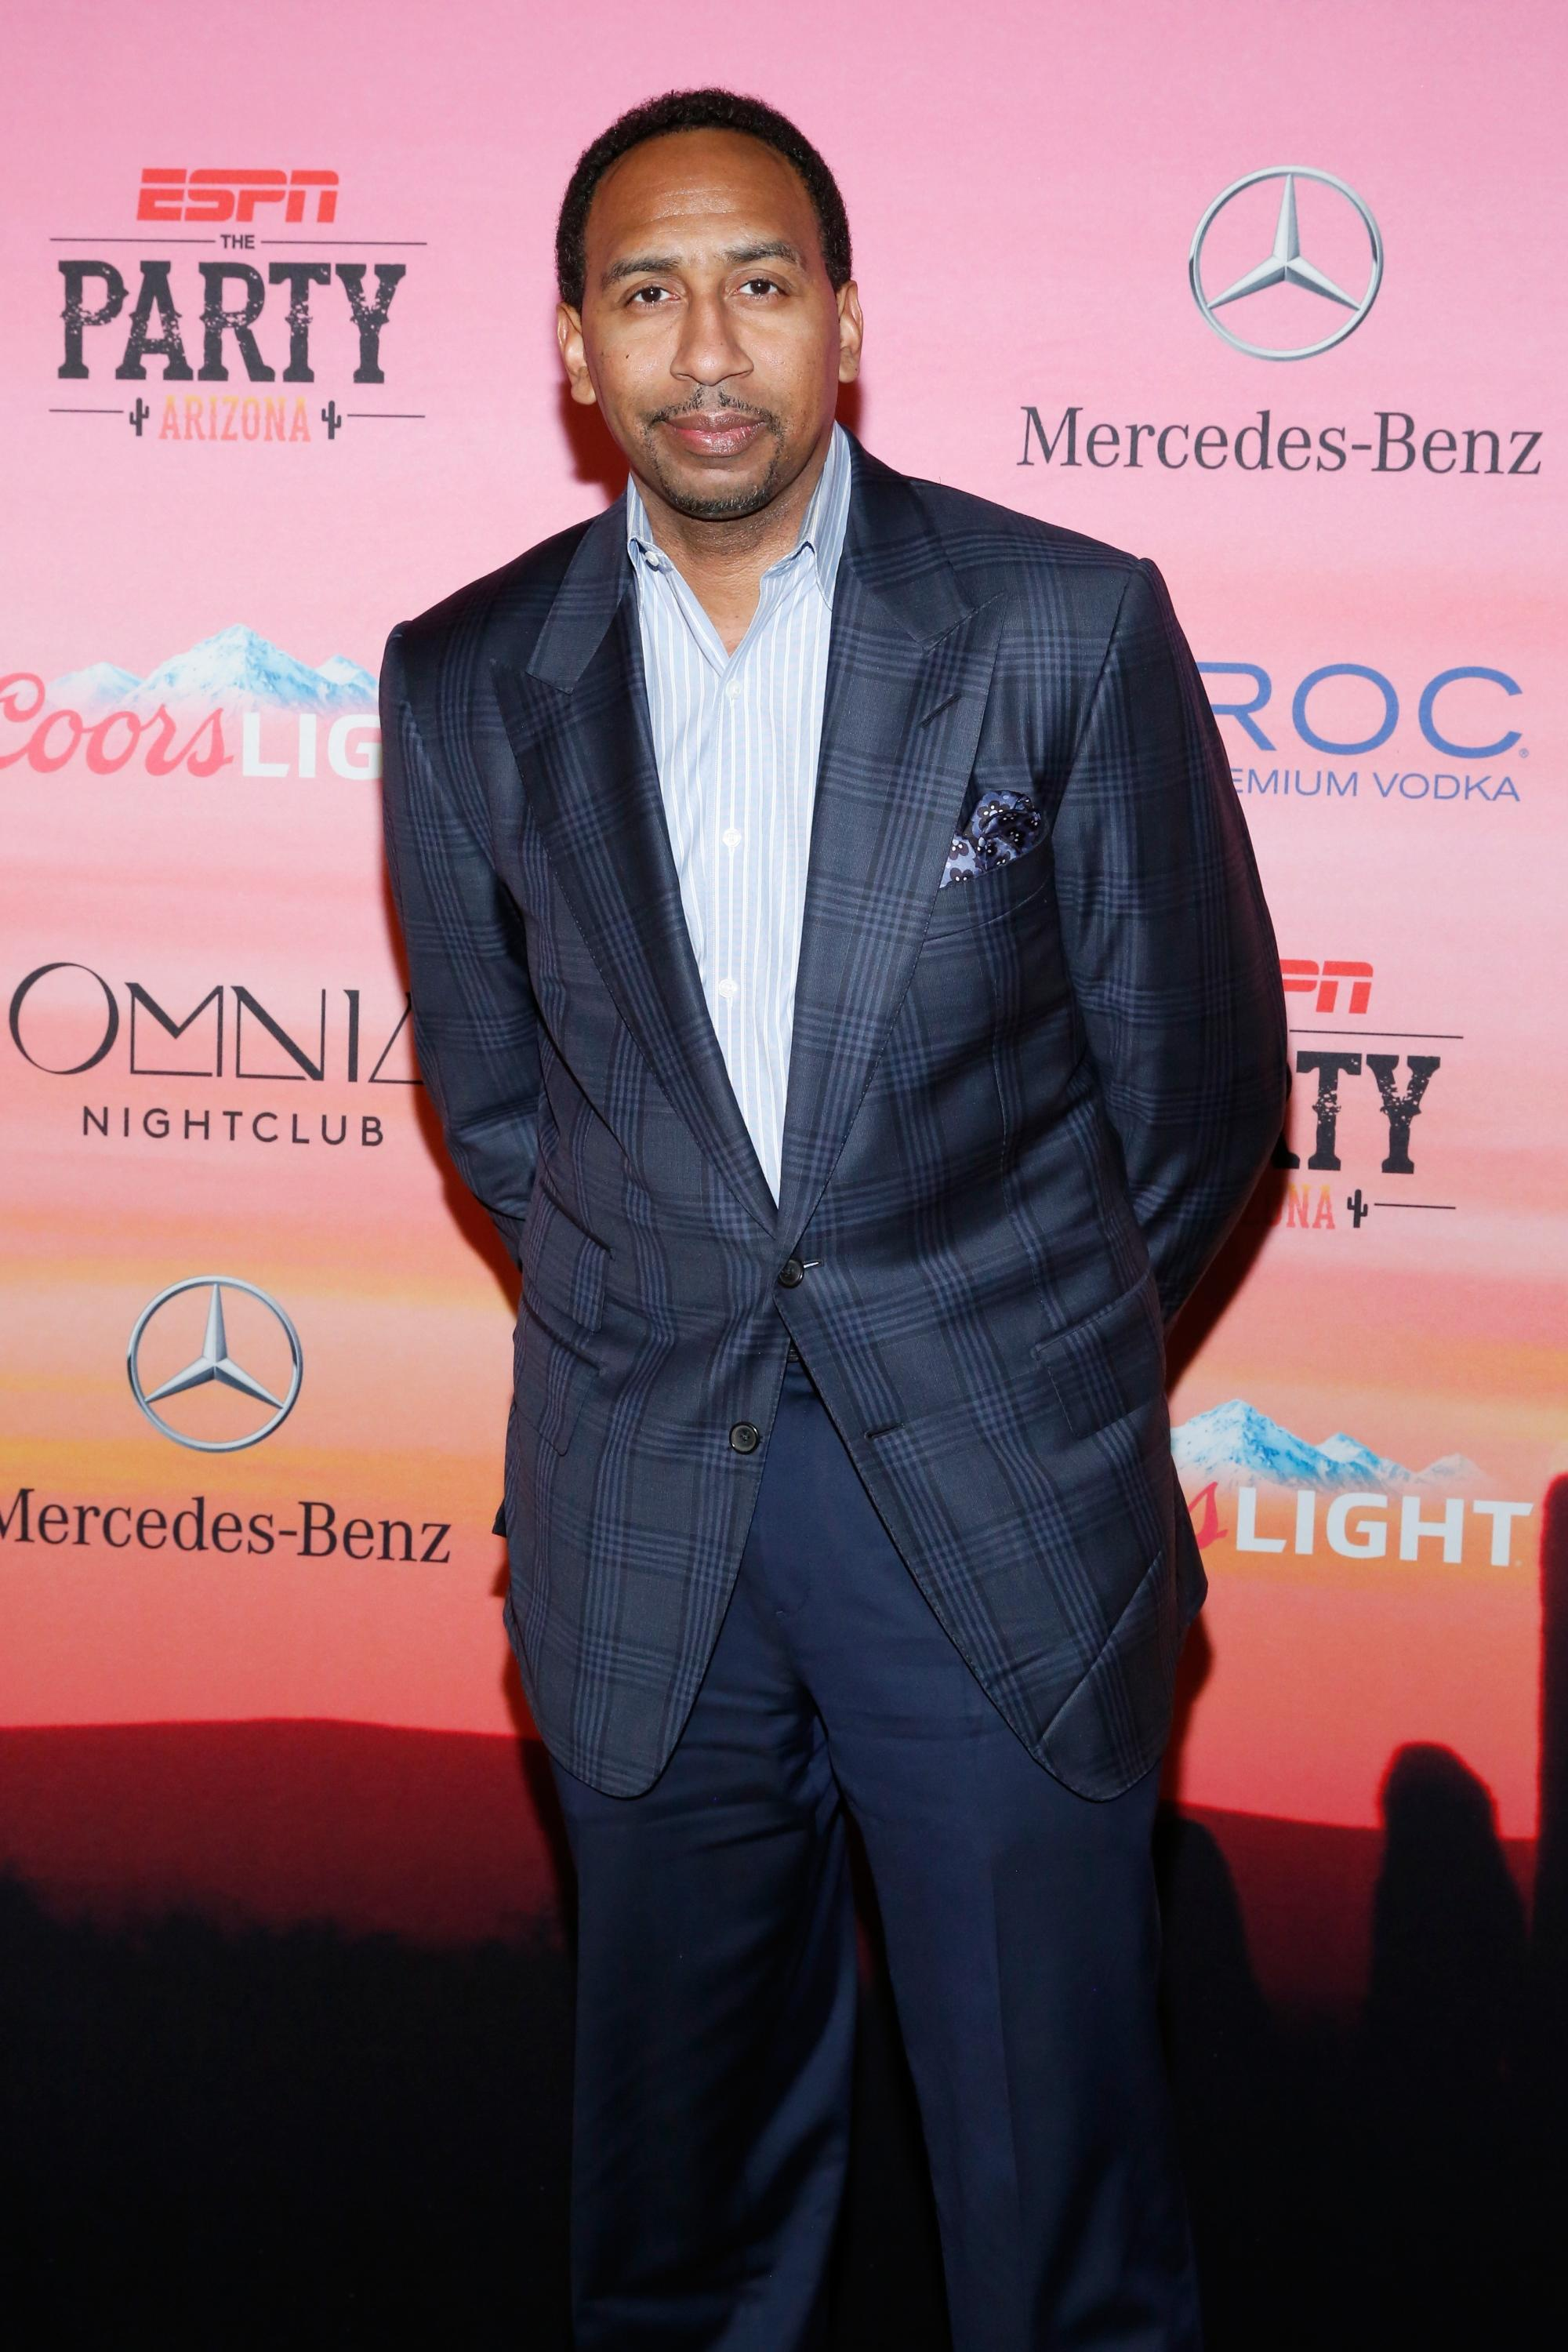 SCOTTSDALE, AZ - JANUARY 30: TV personality Stephen A. Smith attends ESPN the Party at WestWorld of Scottsdale on January 30, 2015 in Scottsdale, Arizona. (Photo by Robin Marchant/Getty Images for ESPN)